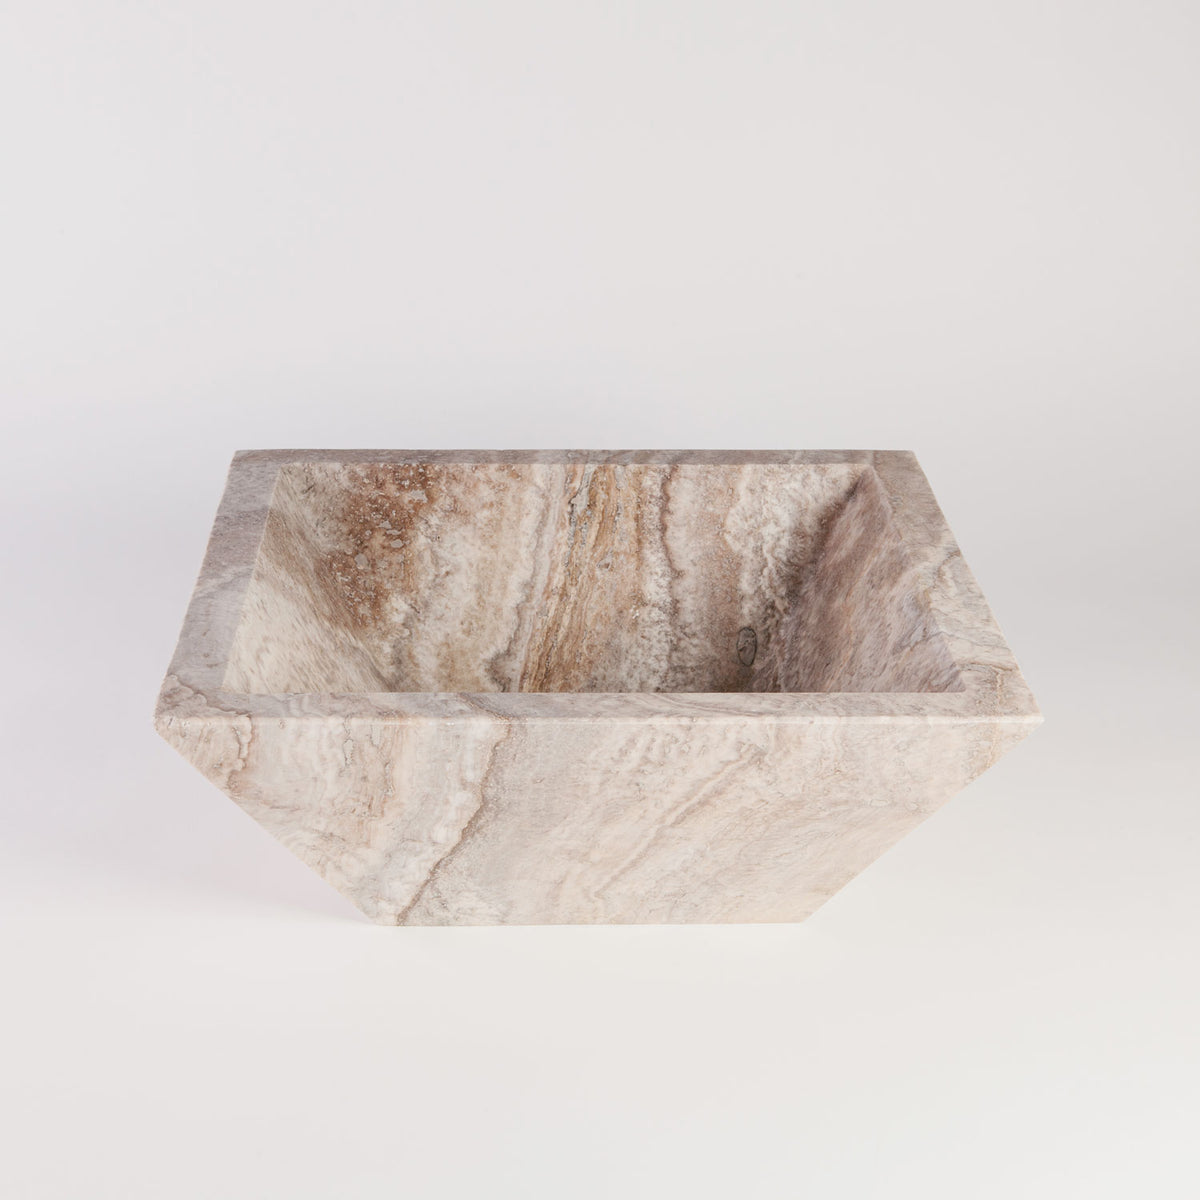 Silver Travertine Vessel Sink